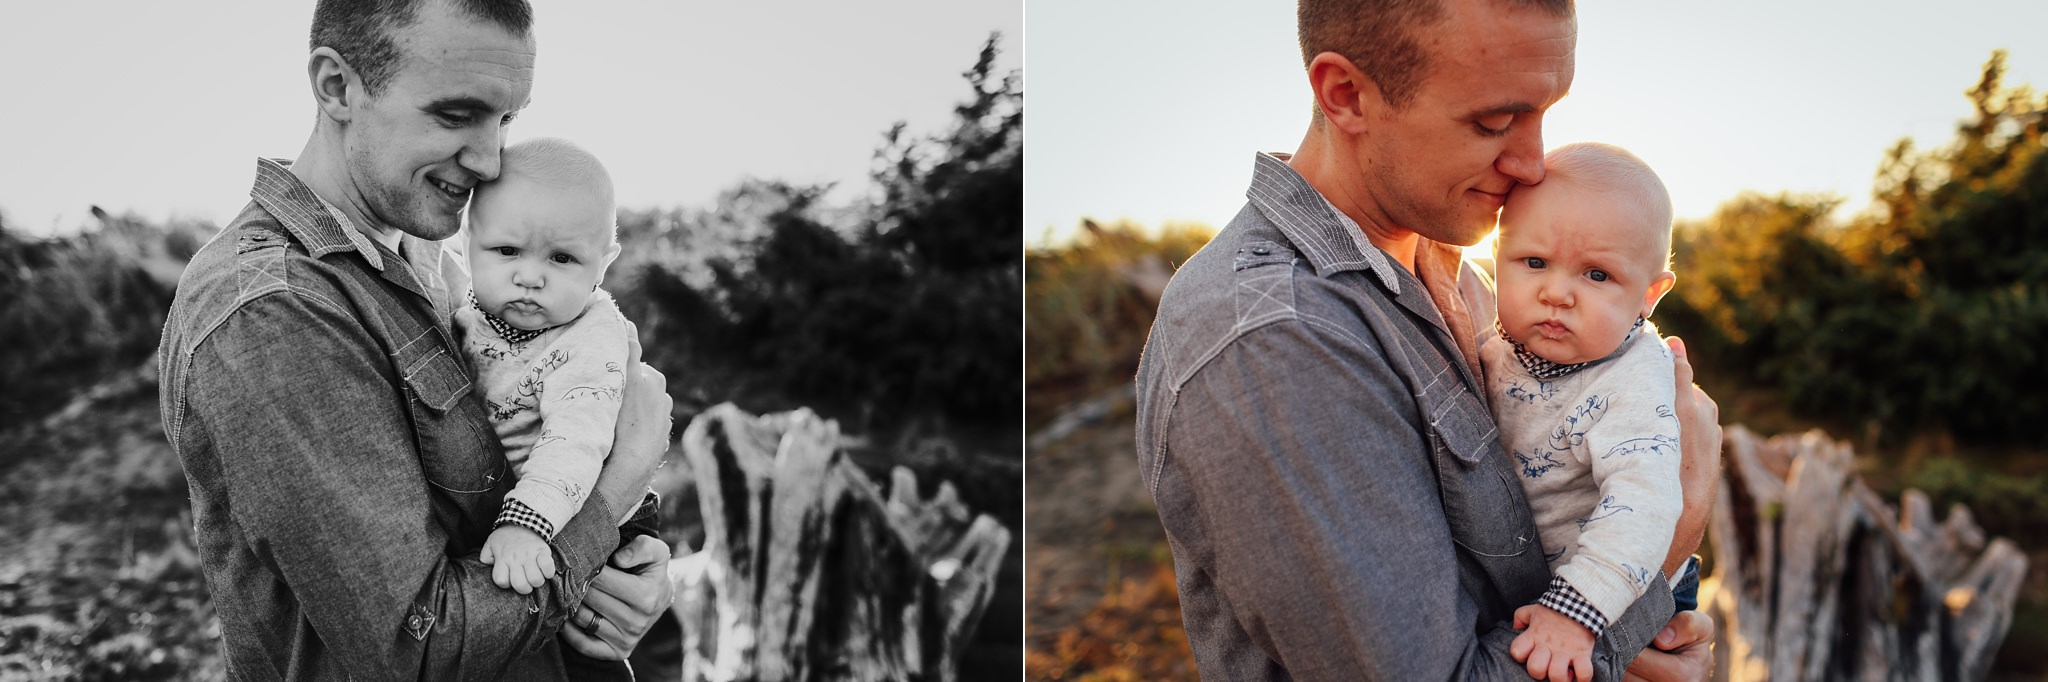 Whidbey-Island-Family-Photographer-Kara-Chappell-Photography_1380.jpg